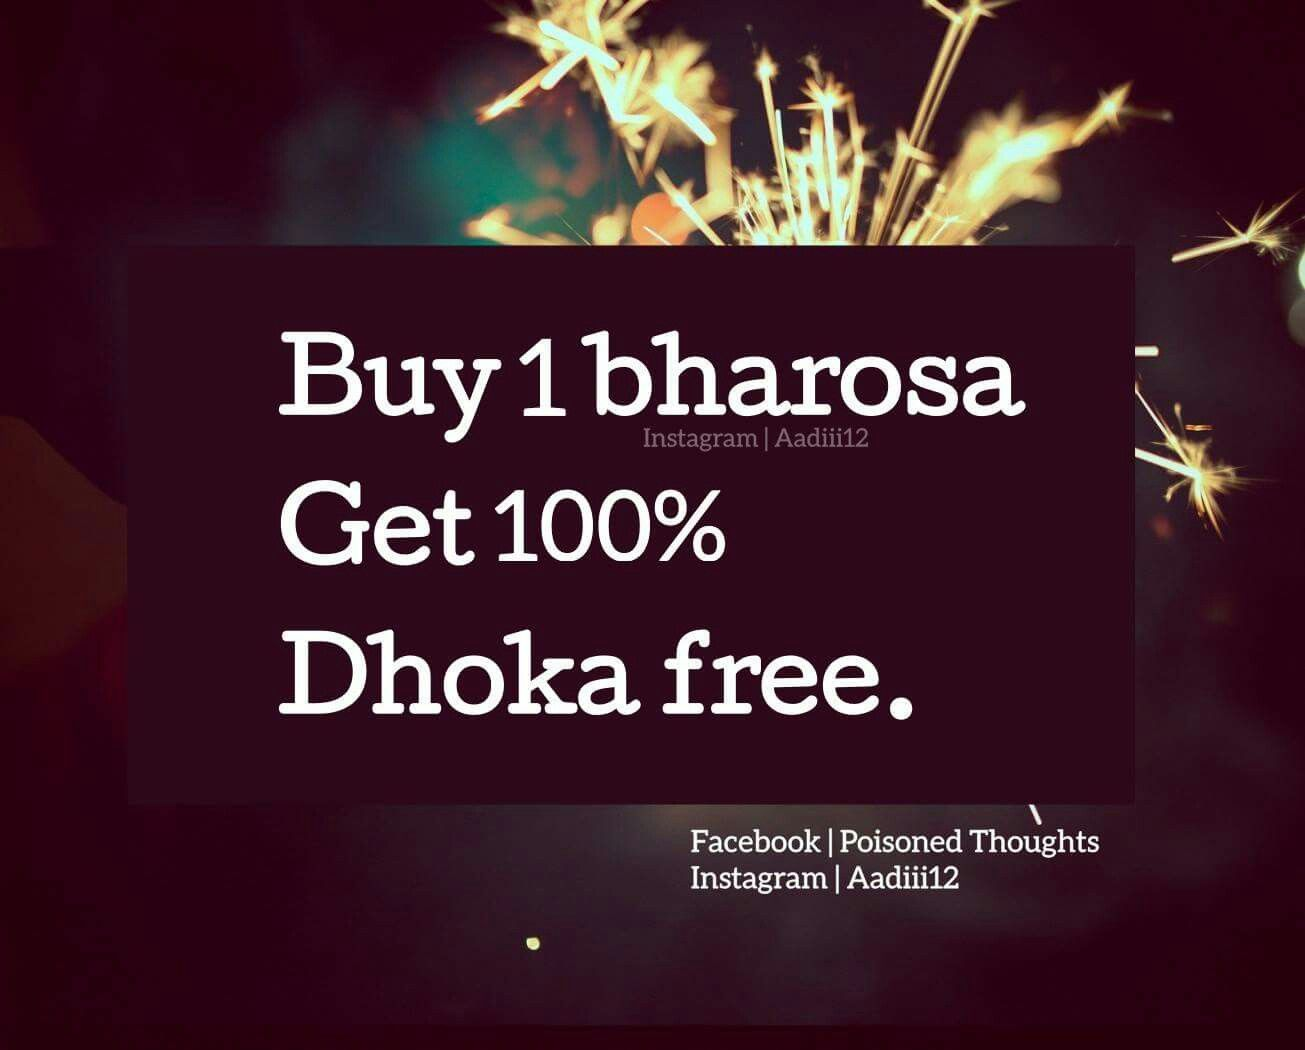 Dhamaka Offer Poisoned Thoughts Quotes Hindi Quotes Sad Quotes